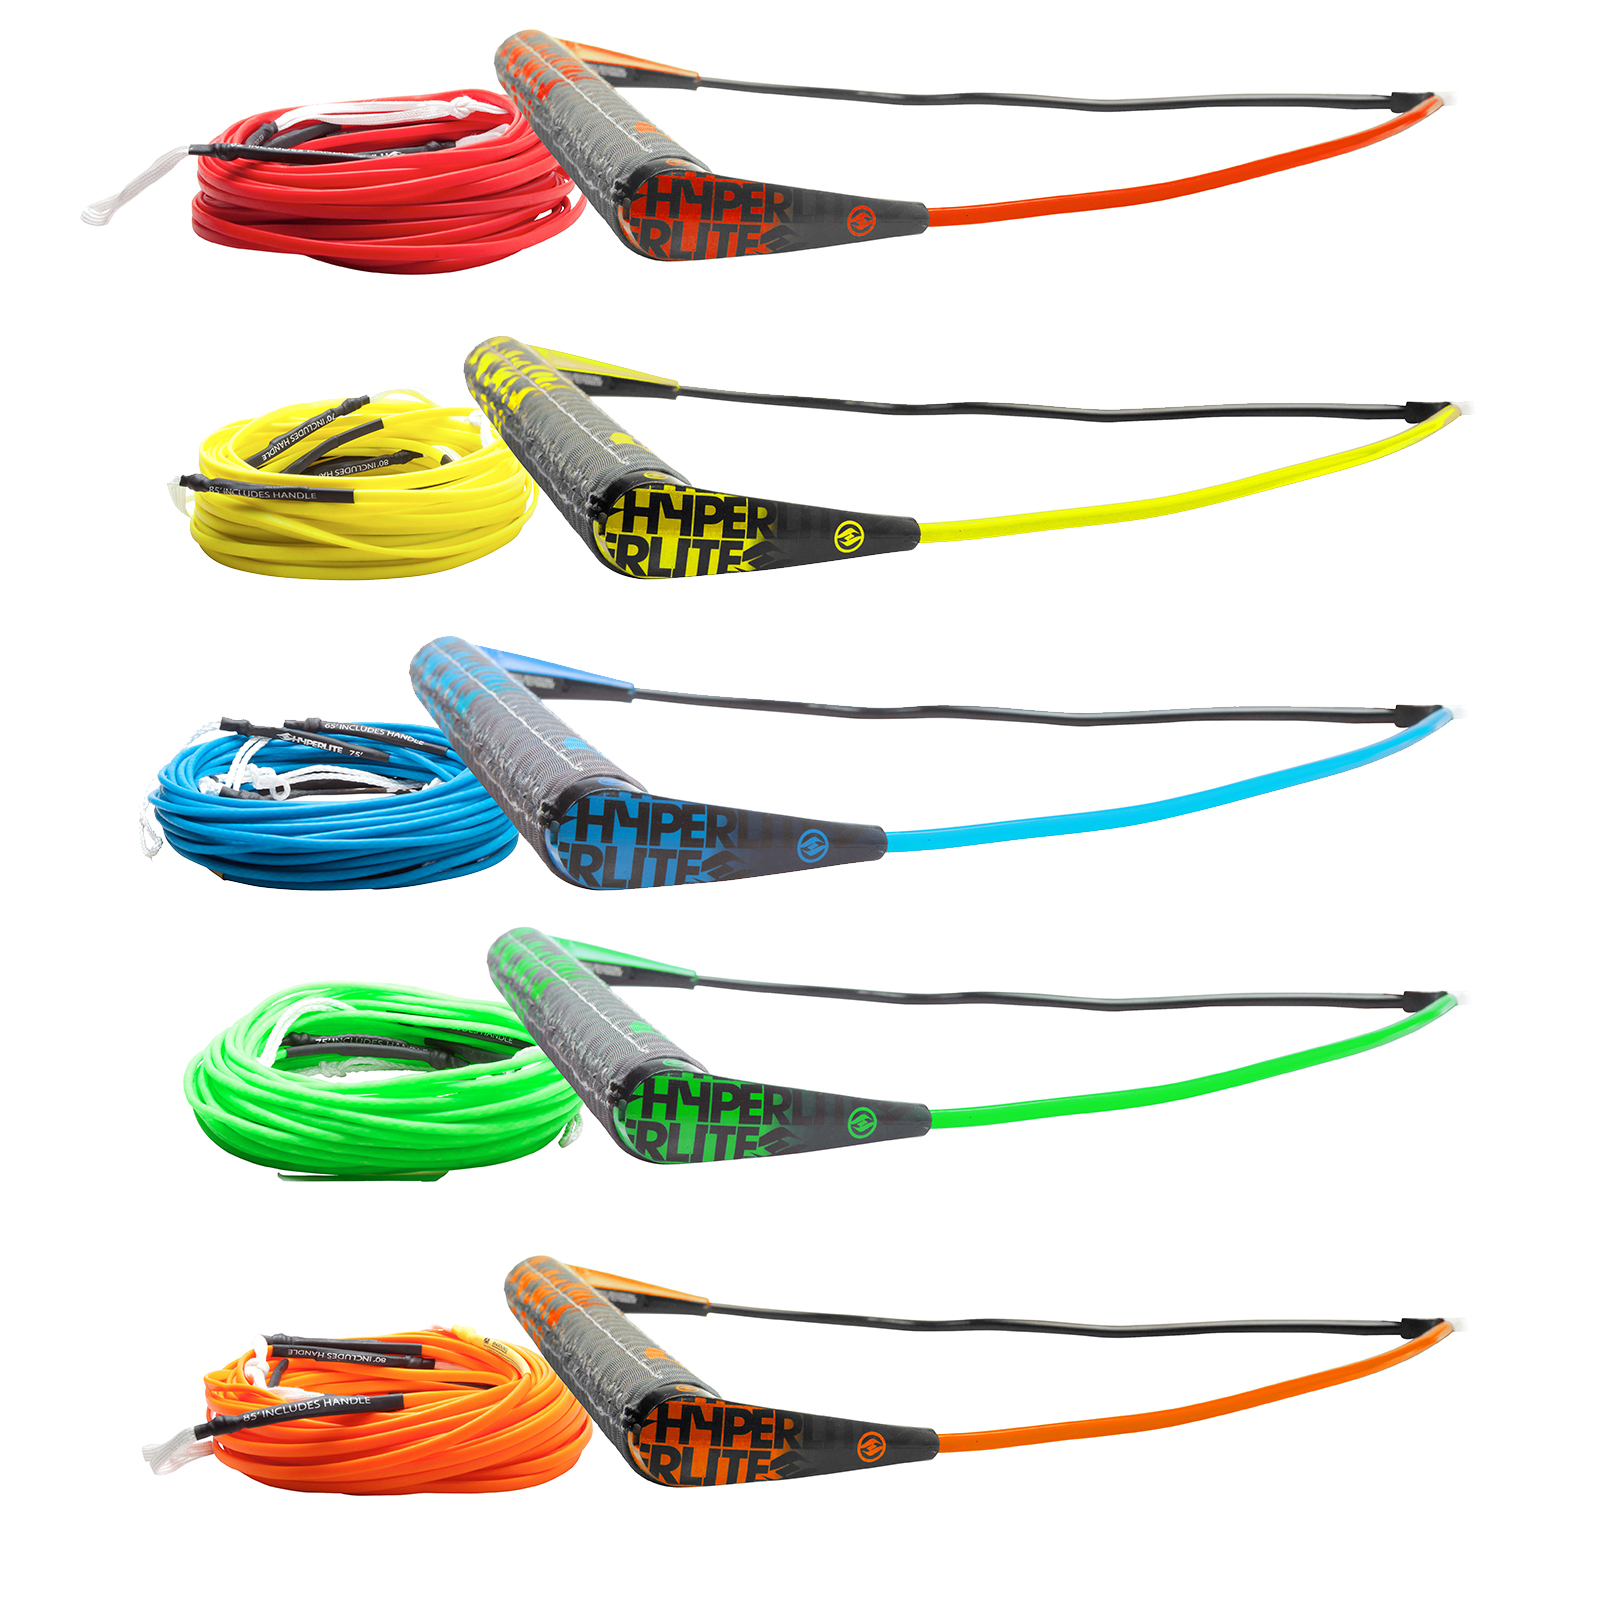 TEAM HANDLE W/X-LINE PACKAGE HYPERLITE 2018